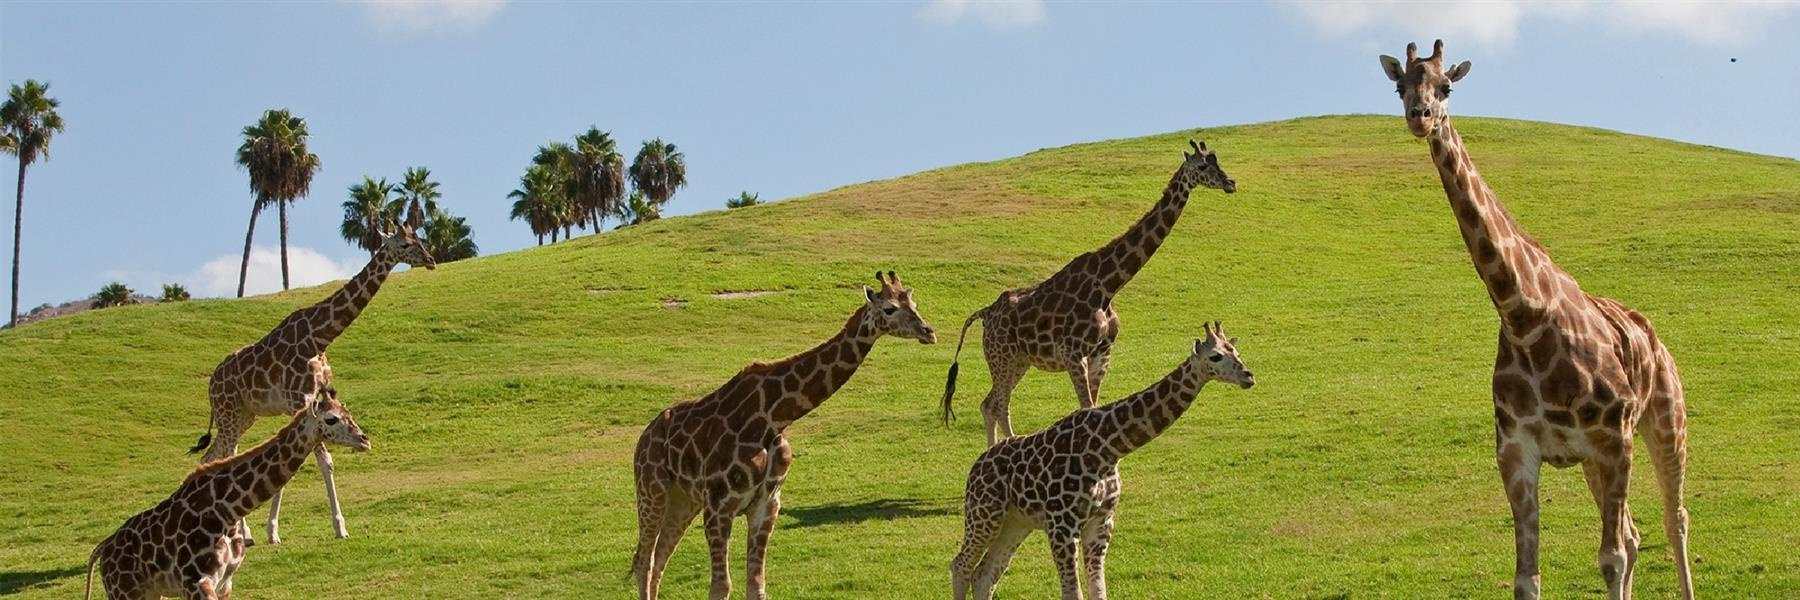 San Diego Zoo Safari Park in Escondido, California